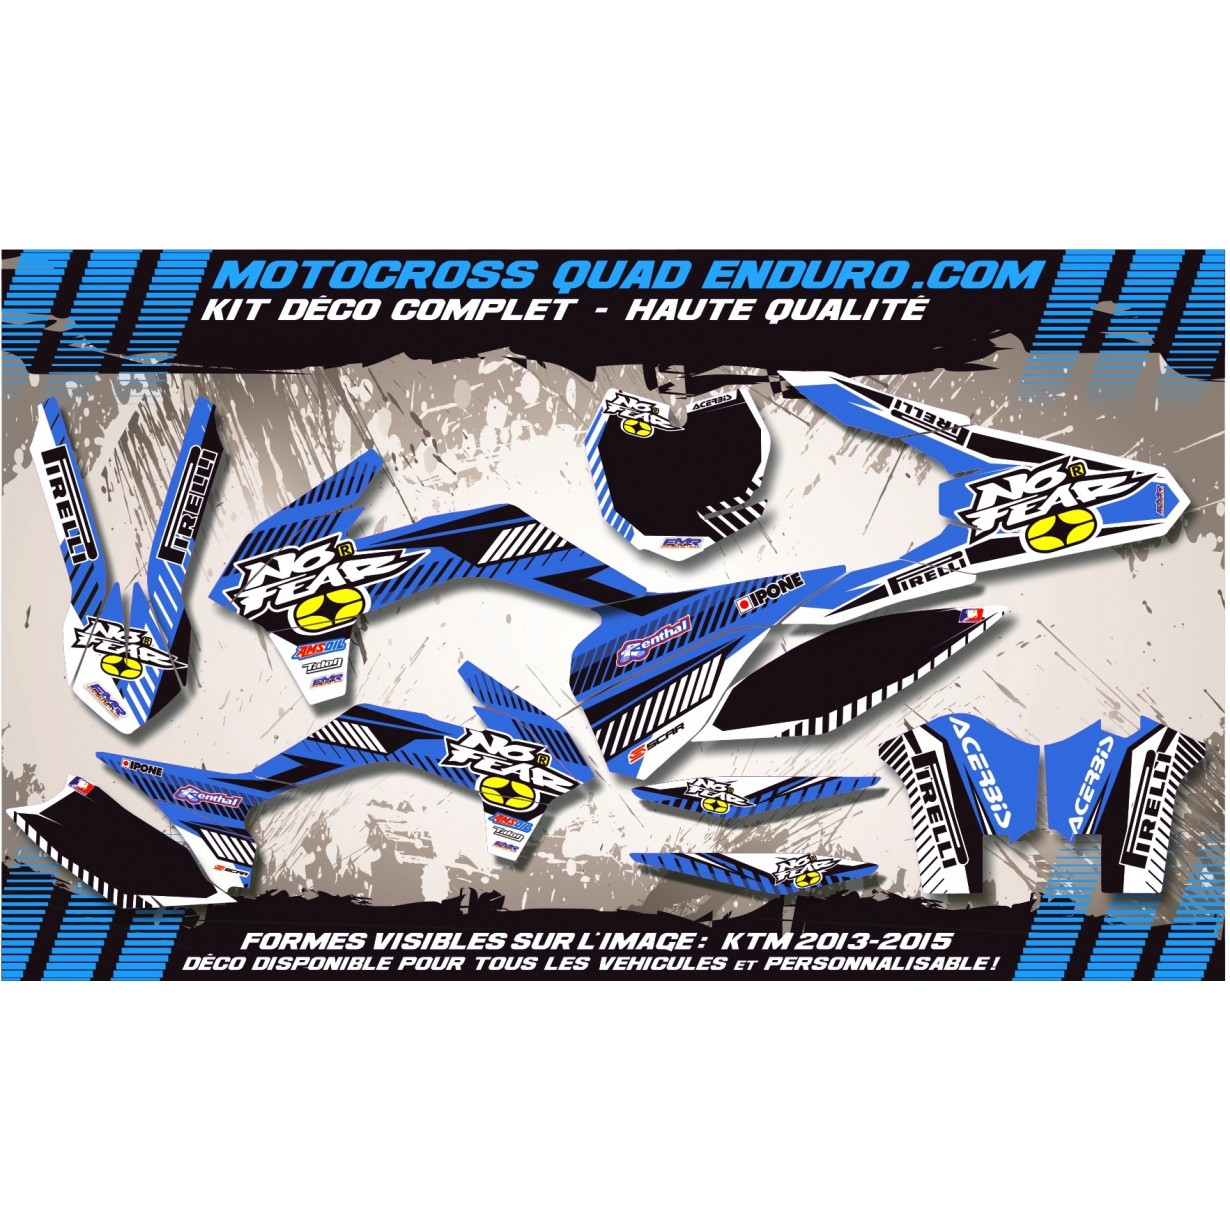 KIT DÉCO Perso 700 RAPTOR 13-18 Quad NO FEAR MA5E